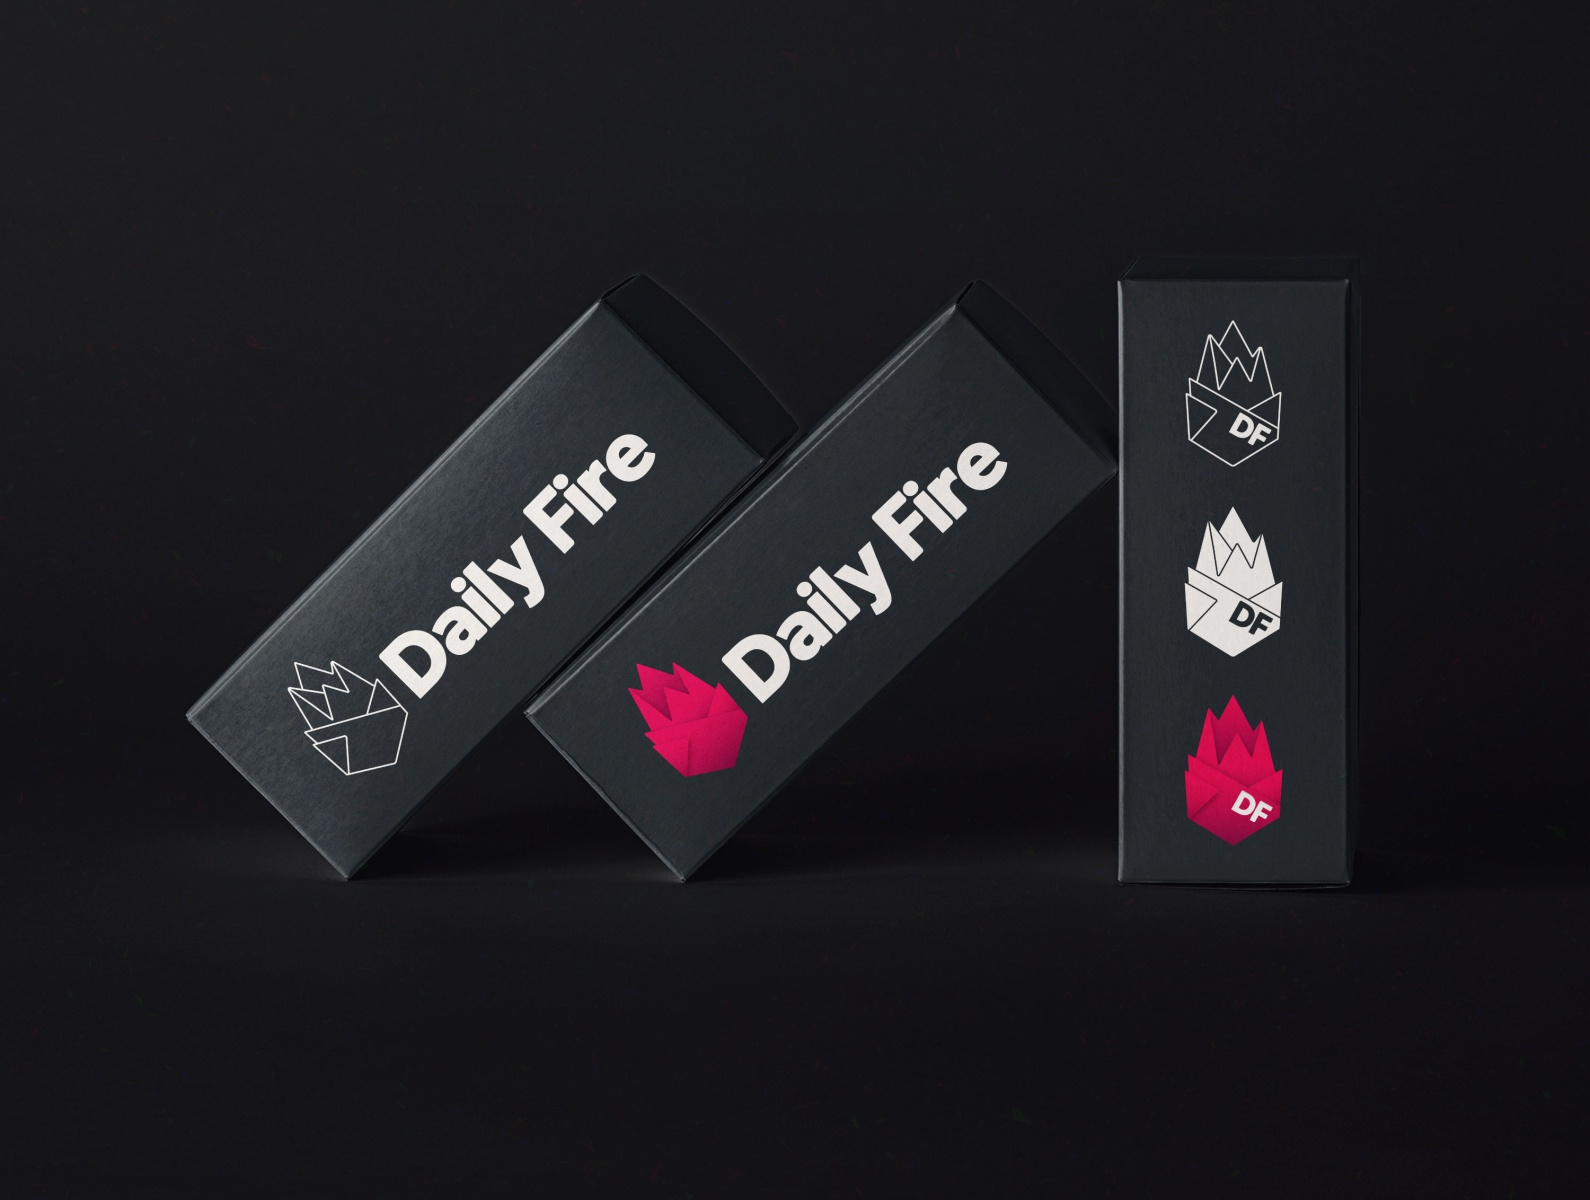 Daily Fire logo variants